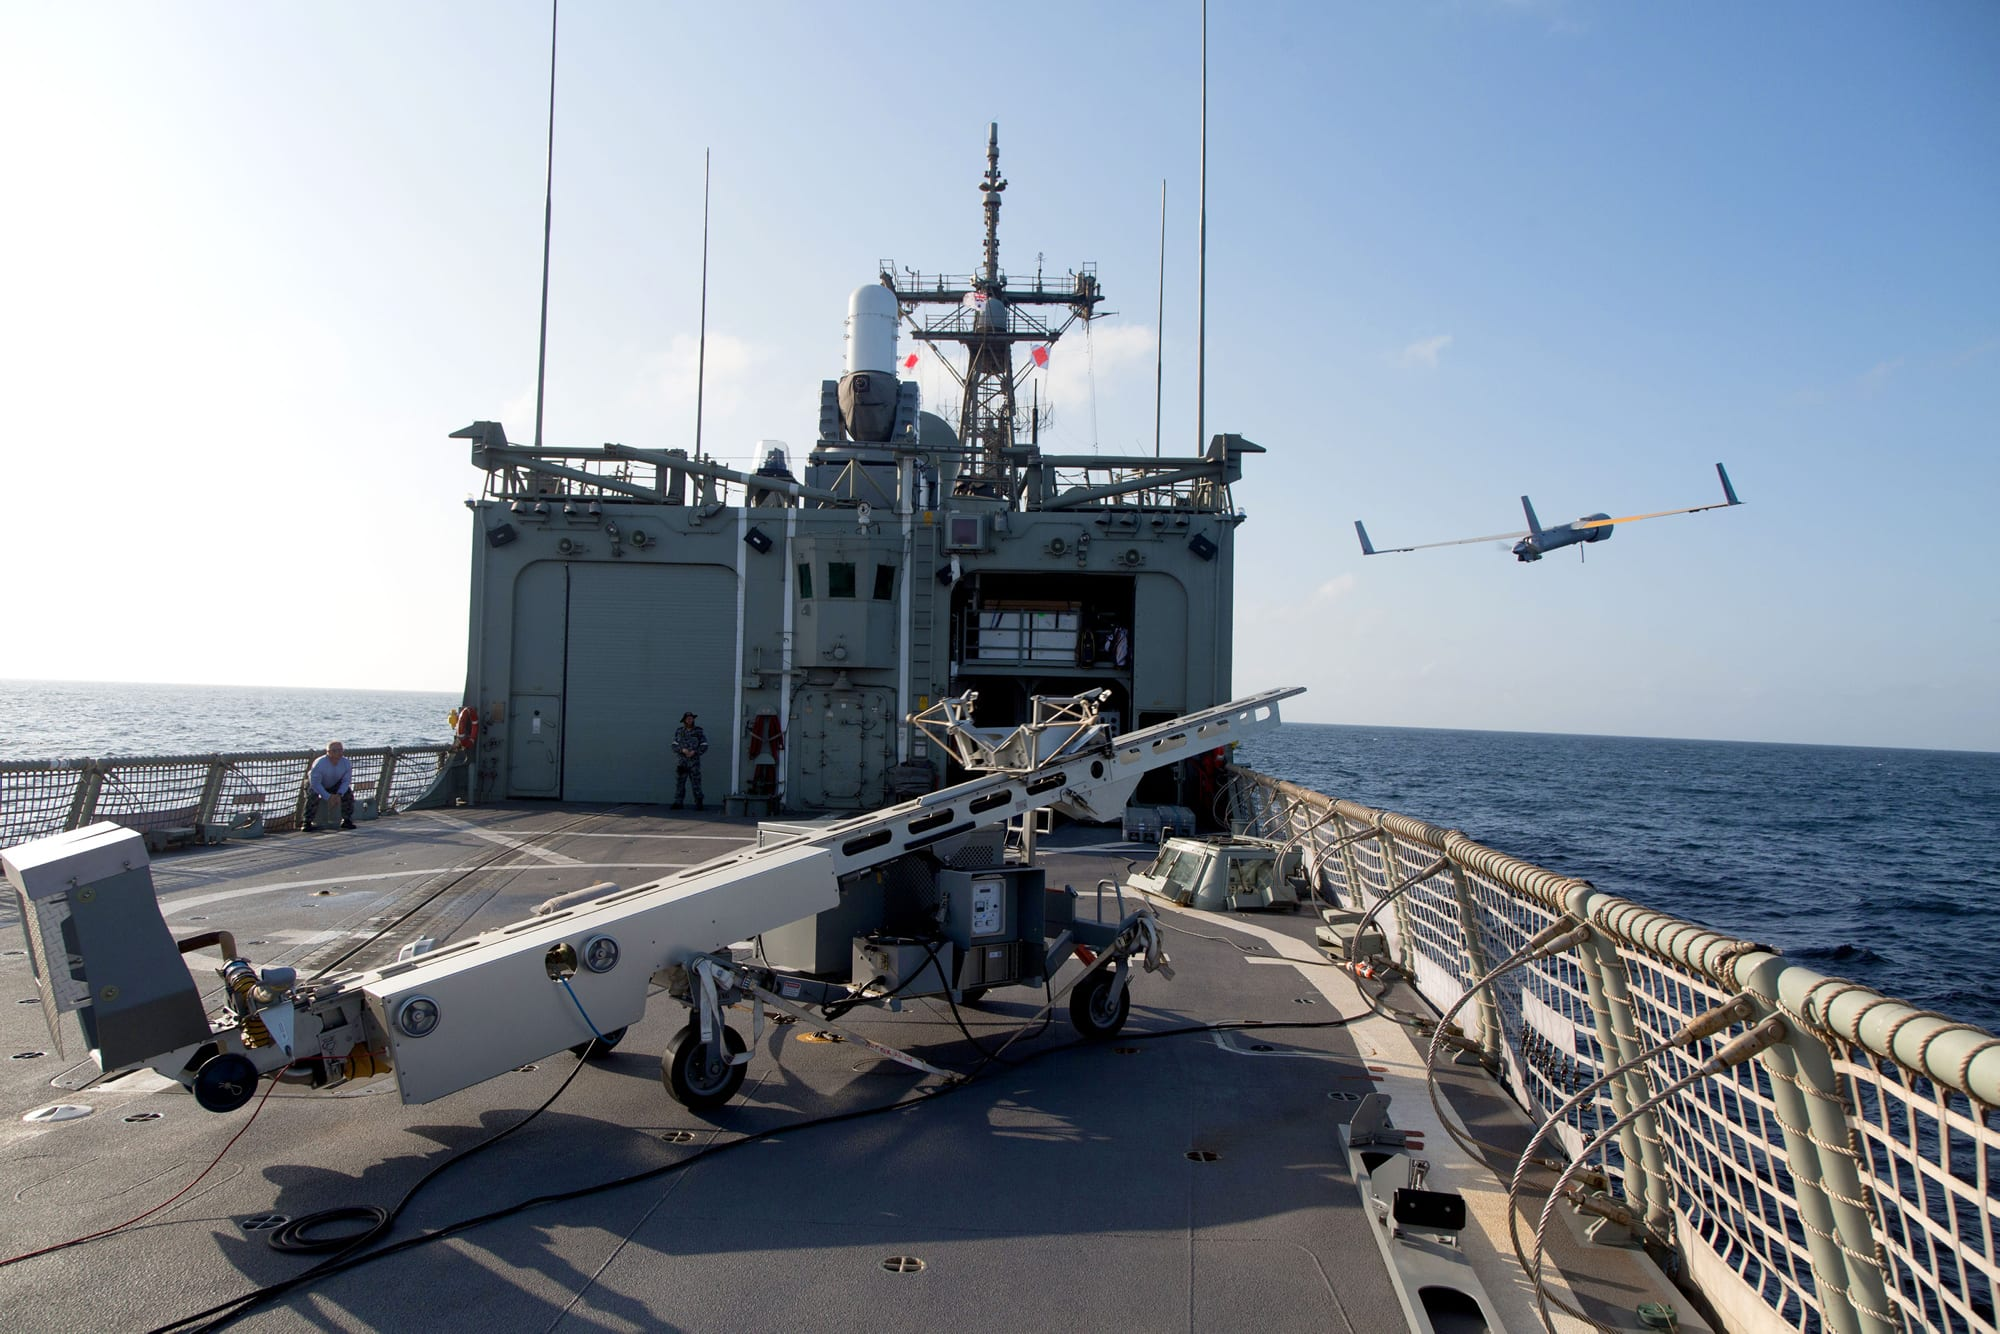 ScanEagle maritime operations